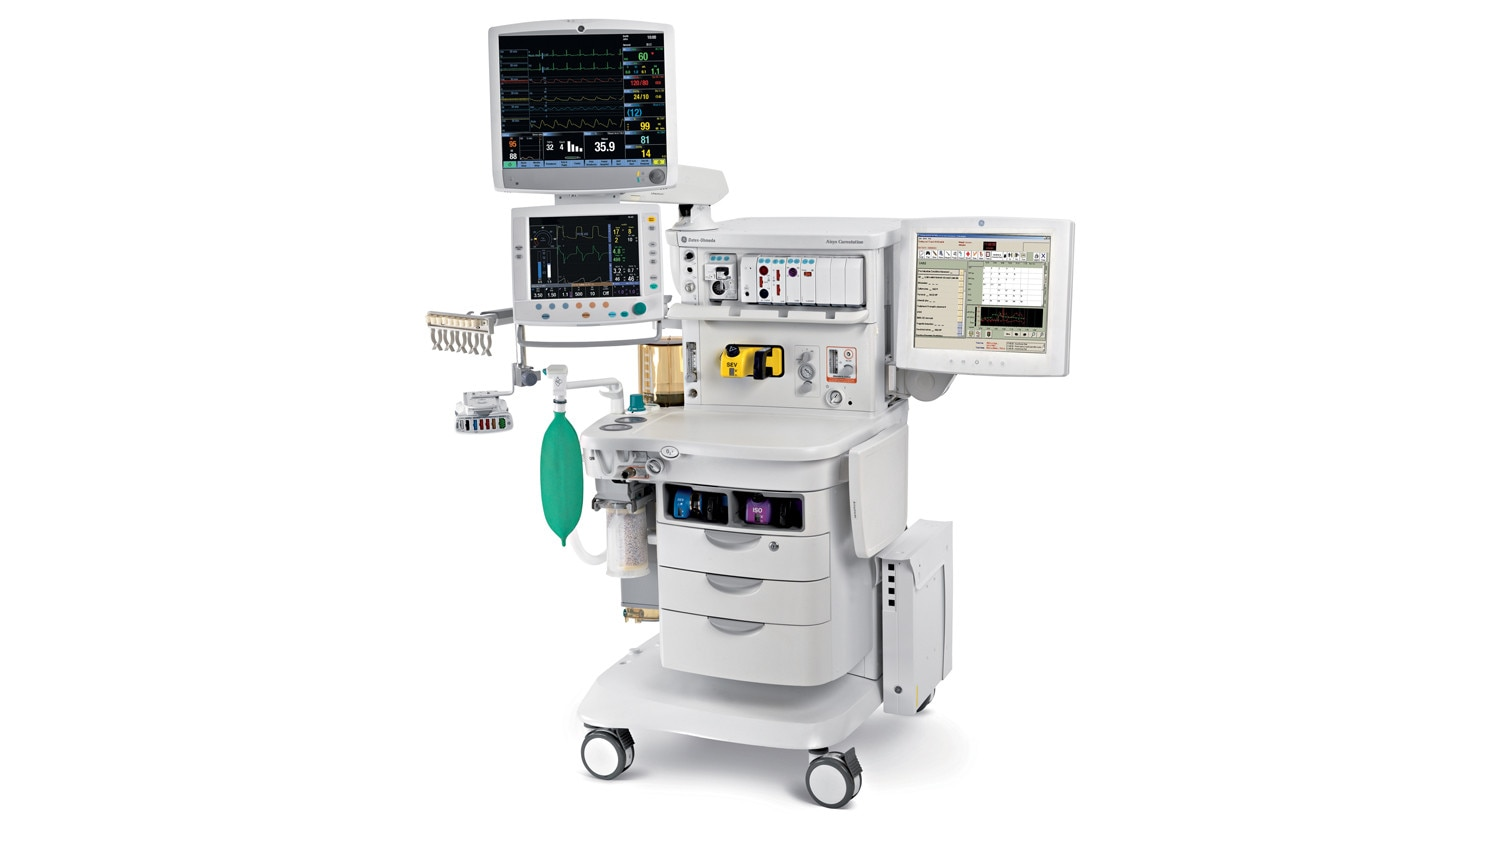 education-product-education-clinical-anesthesia-systems-aisys_edu.jpg